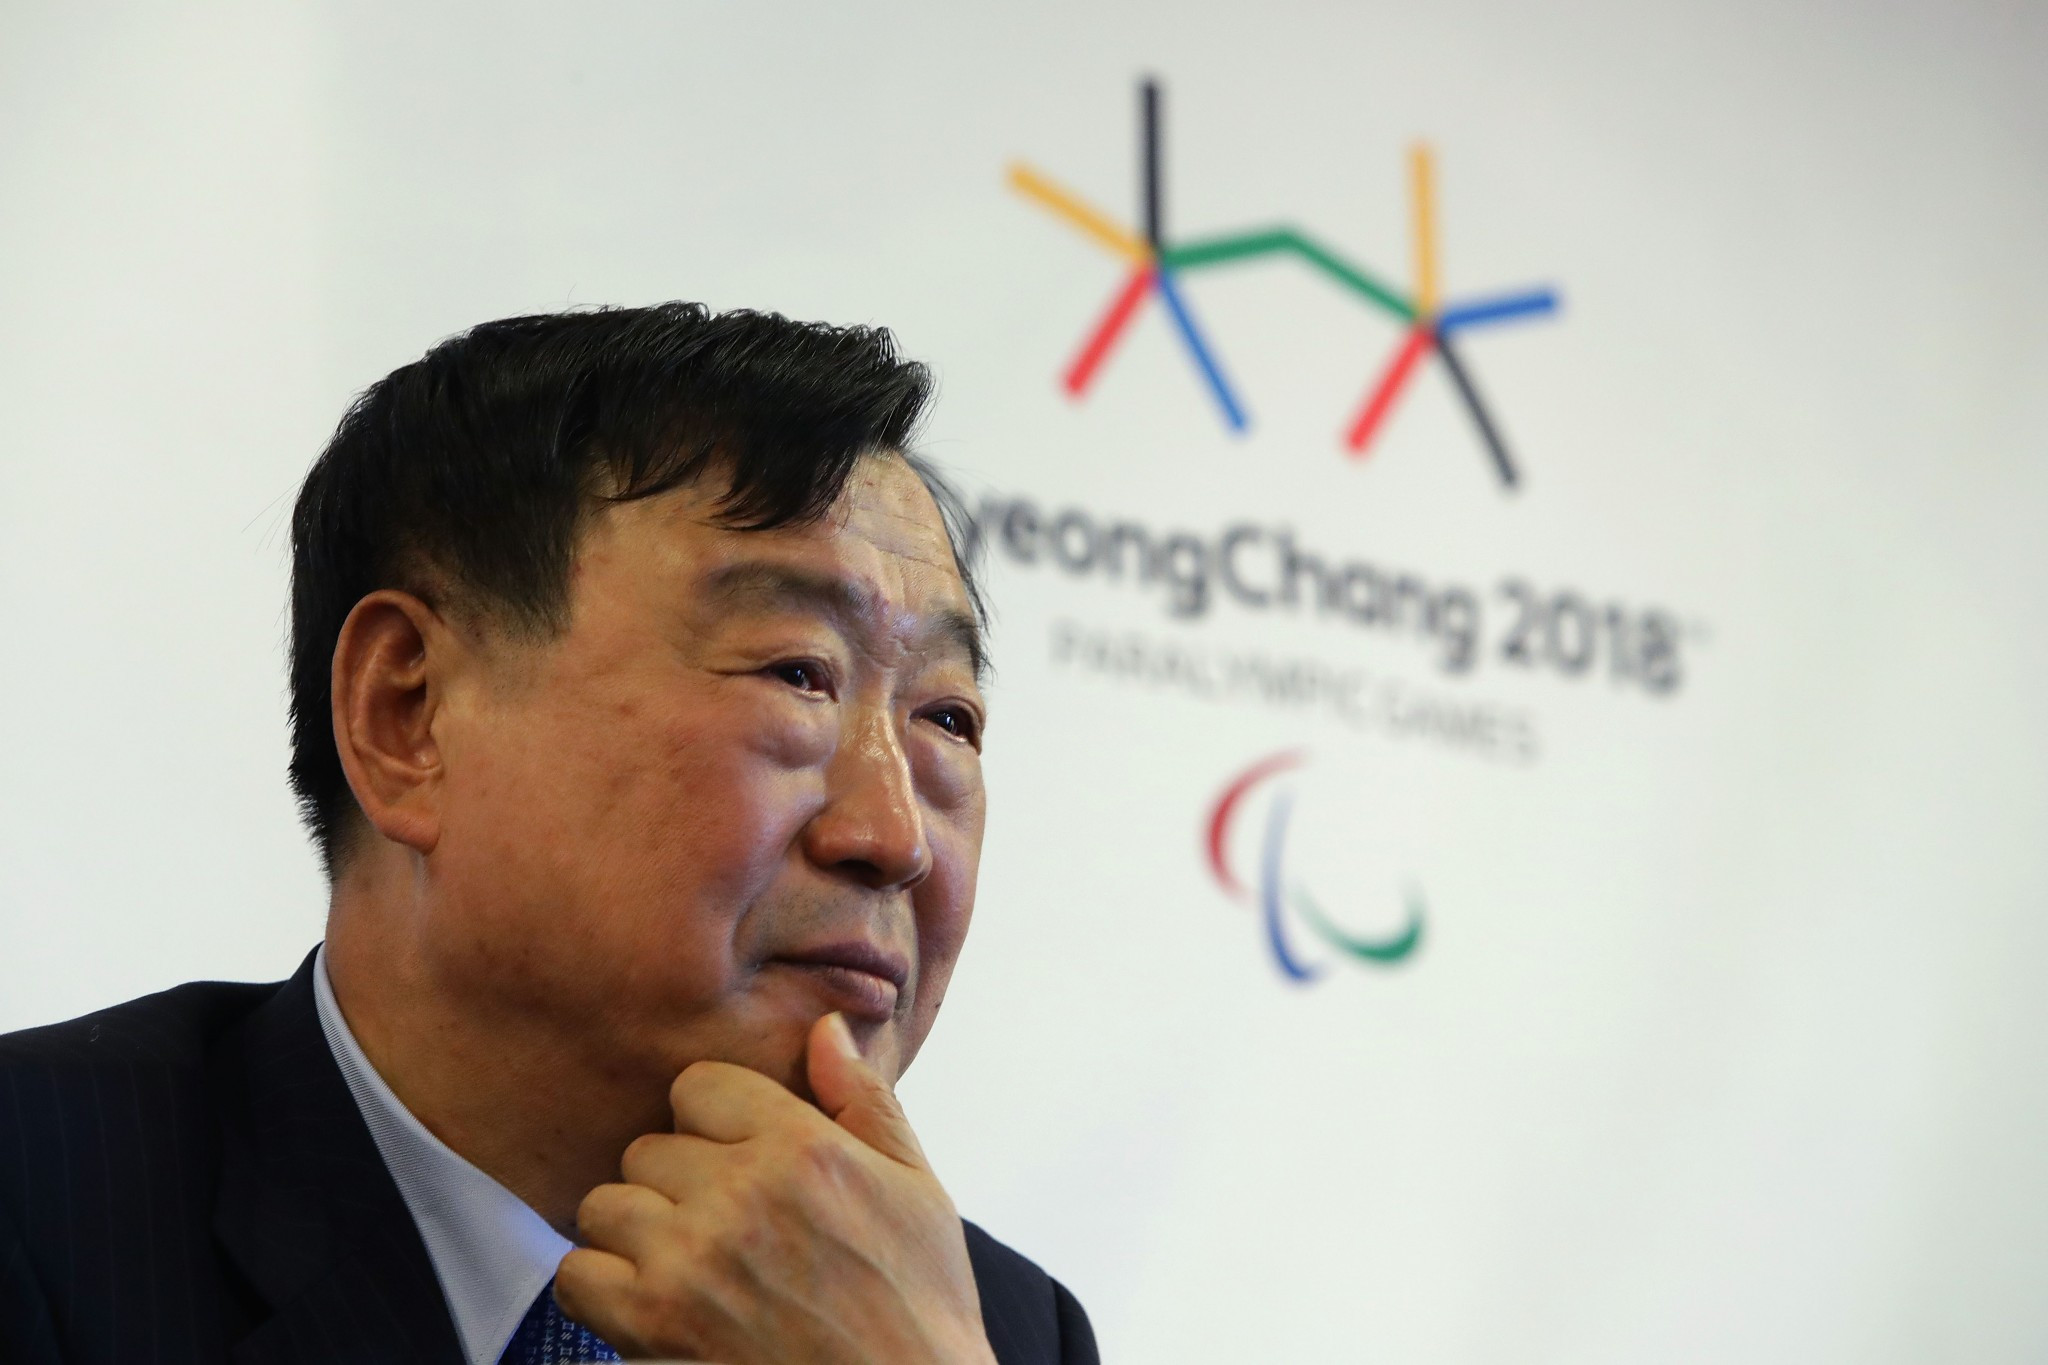 The Pyeongchang 2018 Organising Committee headed by Lee Hee-beom claim to be confident that ticket sales will enjoy a late surge ©Getty Images